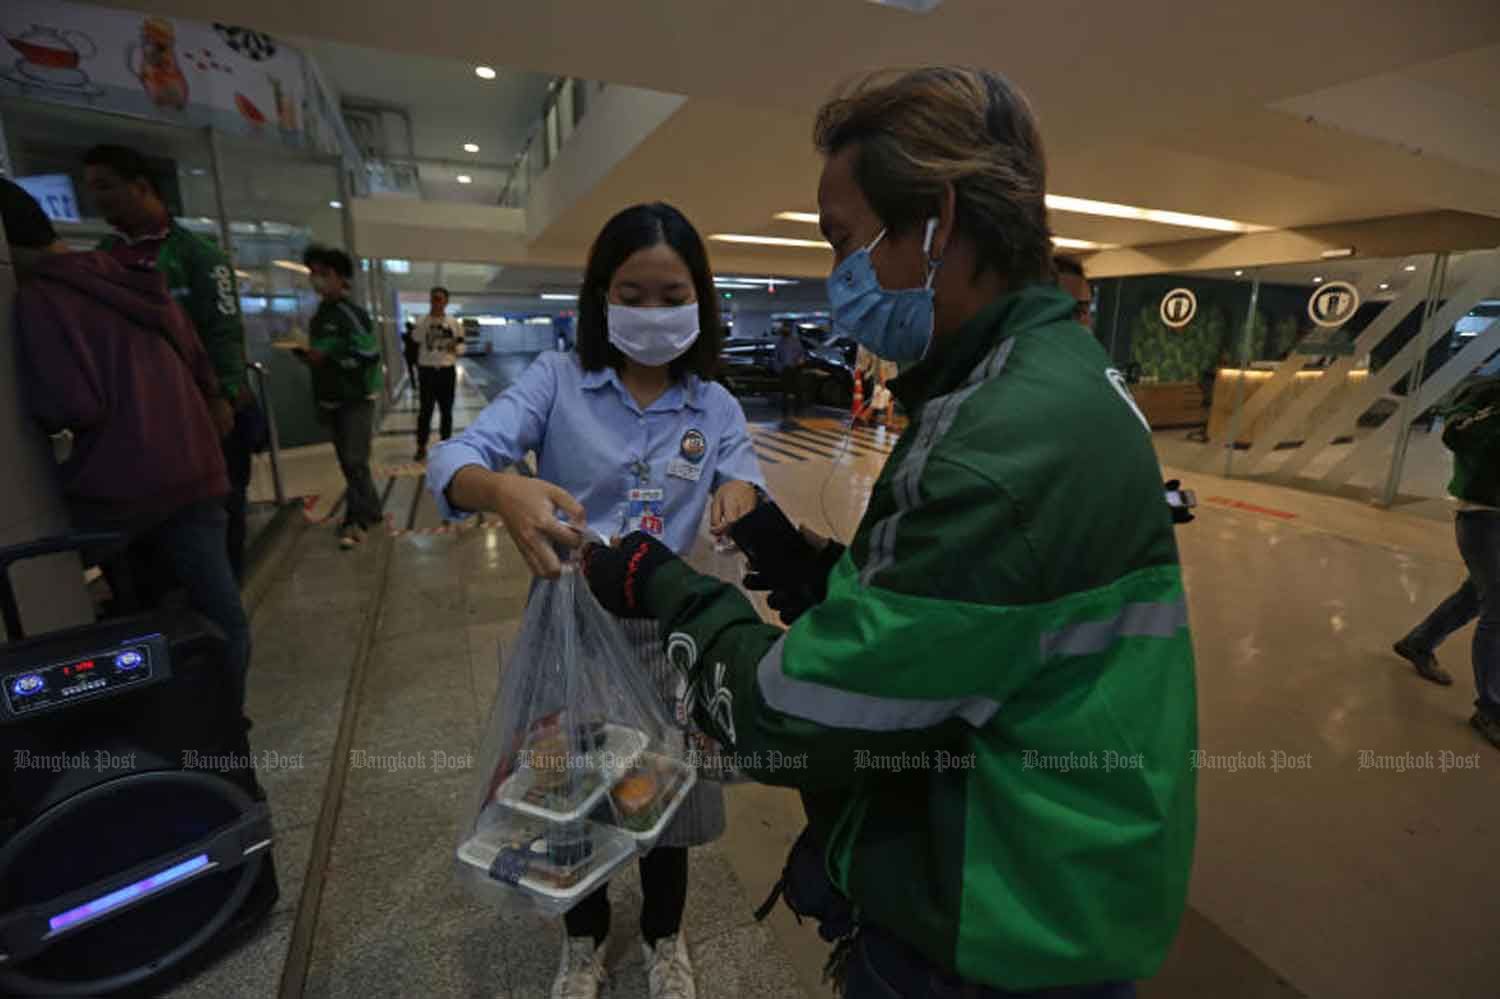 A delivery man is receiving food in plastic bag and boxes from a vendor at a shopping centre in Bangkok as dining is banned at restaurants due to the coronavirus disease pandemic. (Photo by Varuth Hirunyatheb)